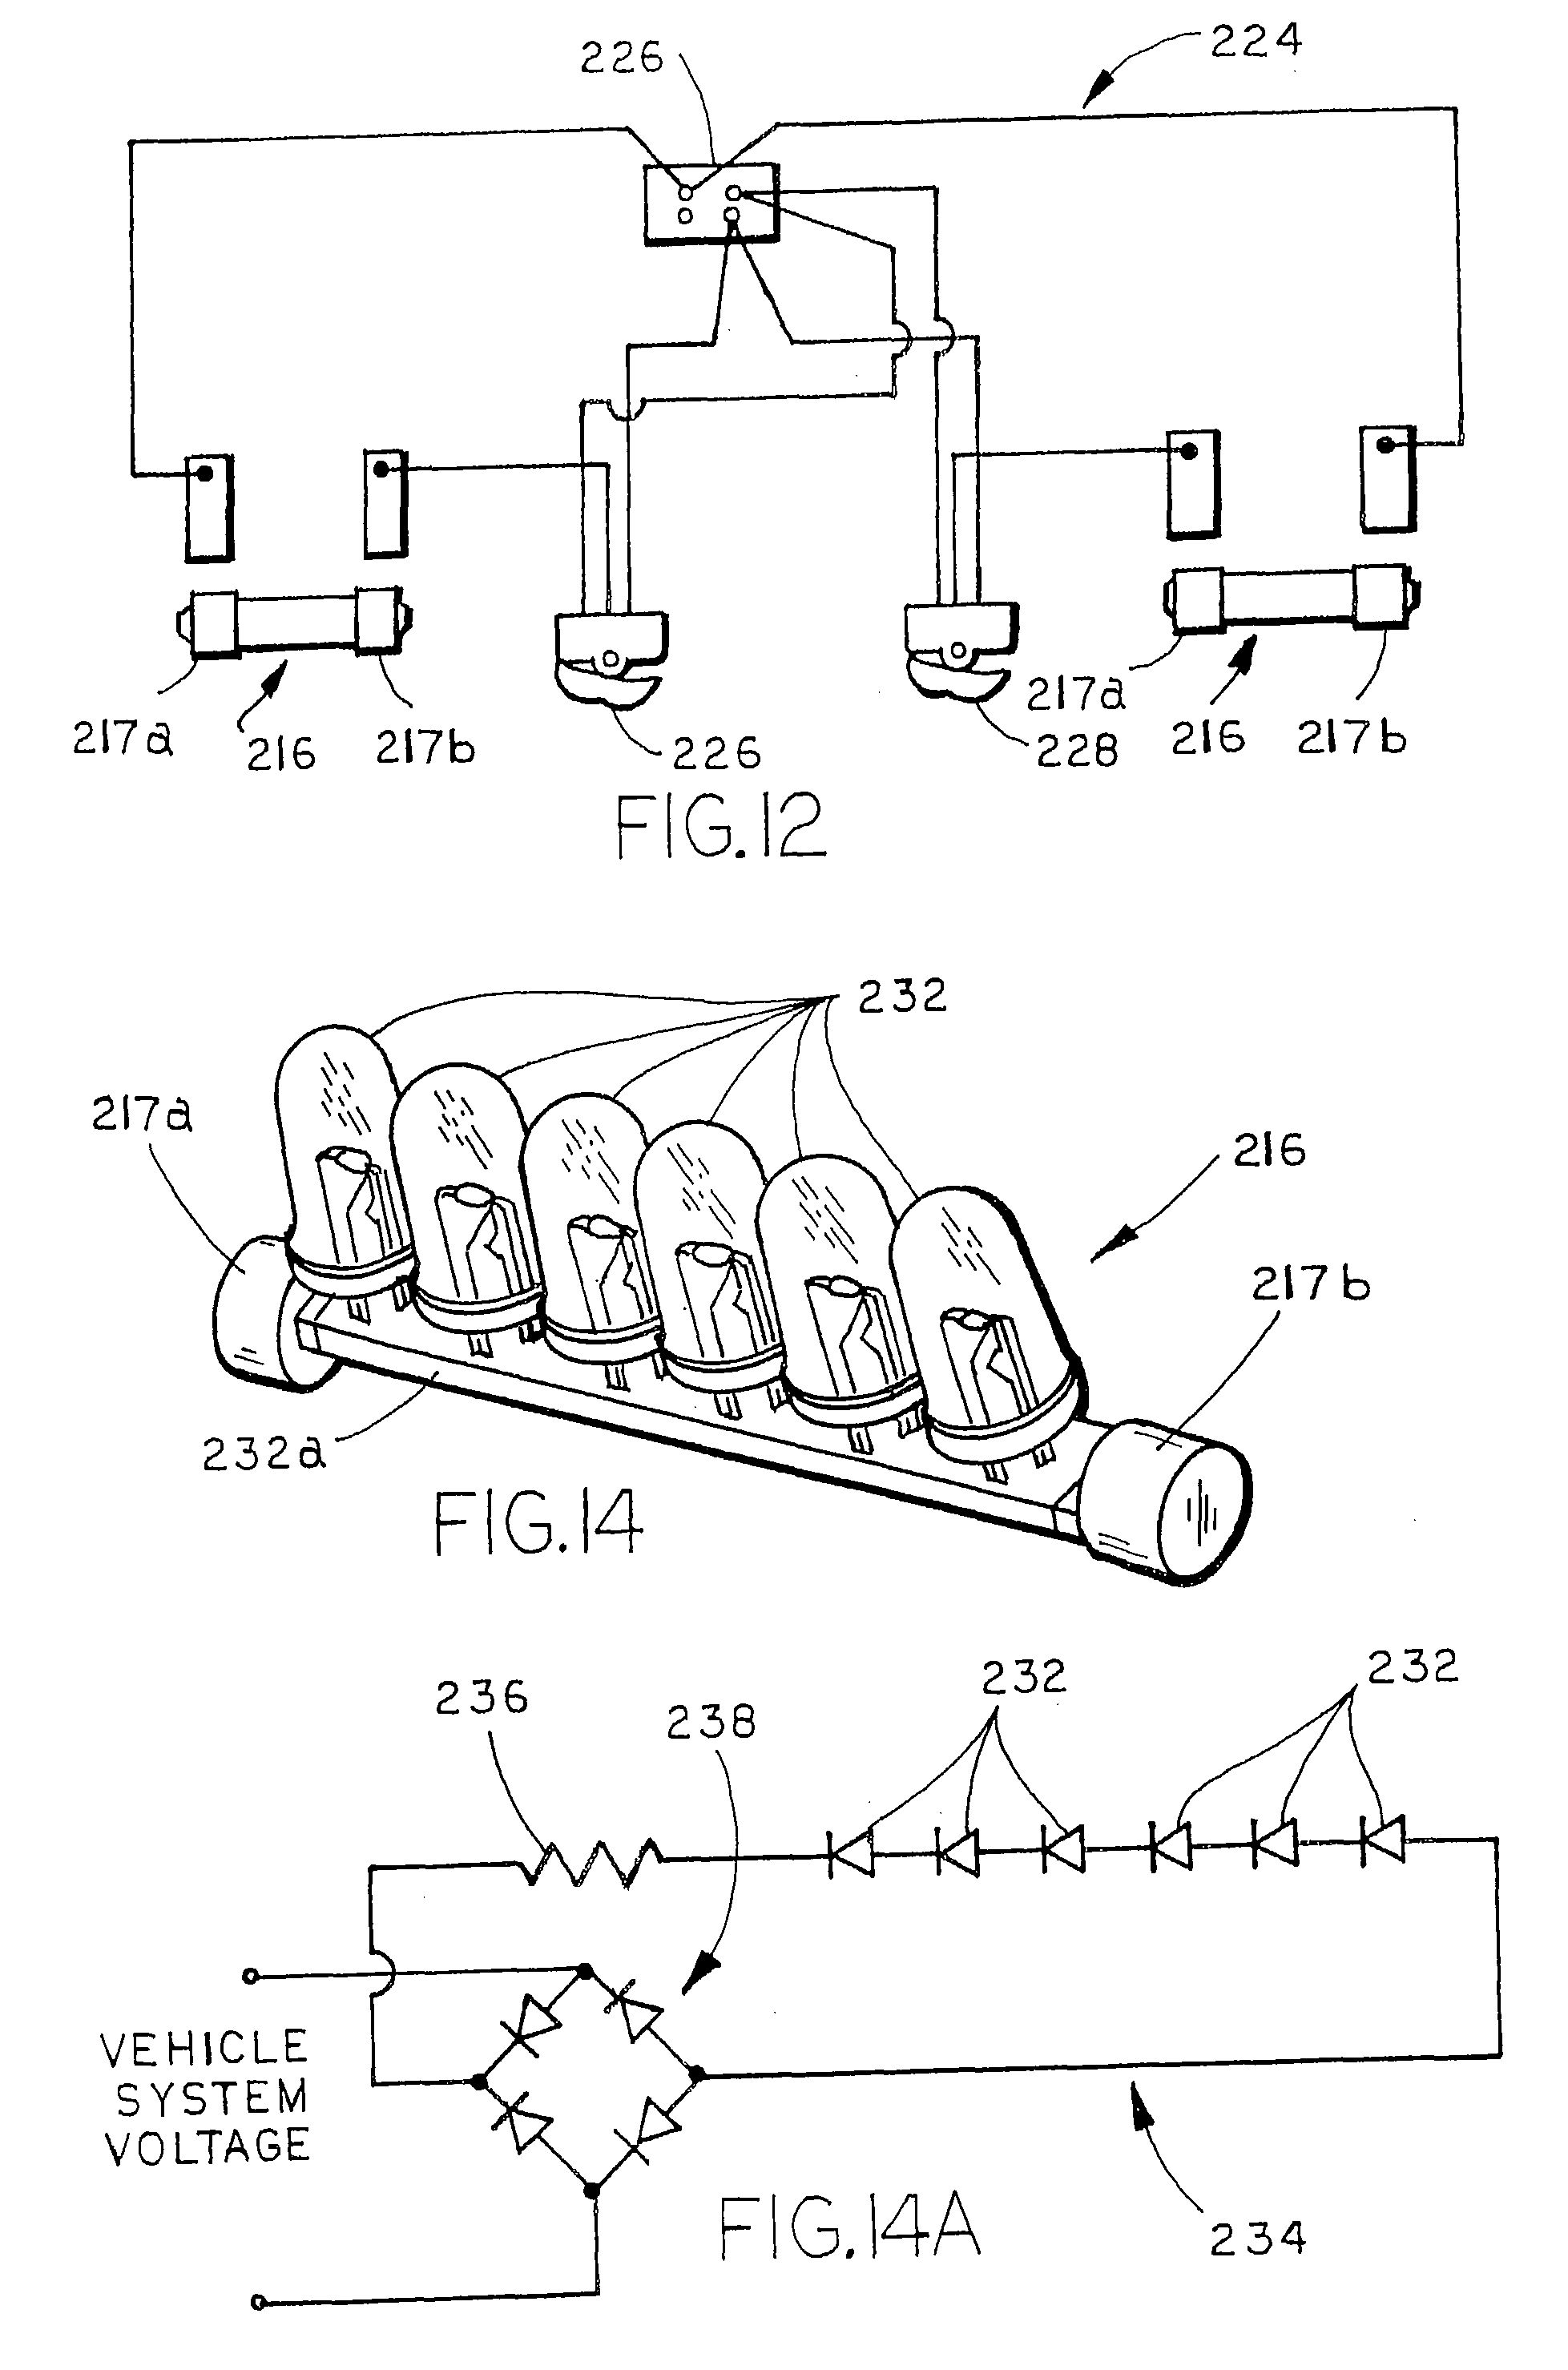 Patent Us 7731403 B2 Figure 216 Engine Room Lighting Control Panel Wiring Diagram